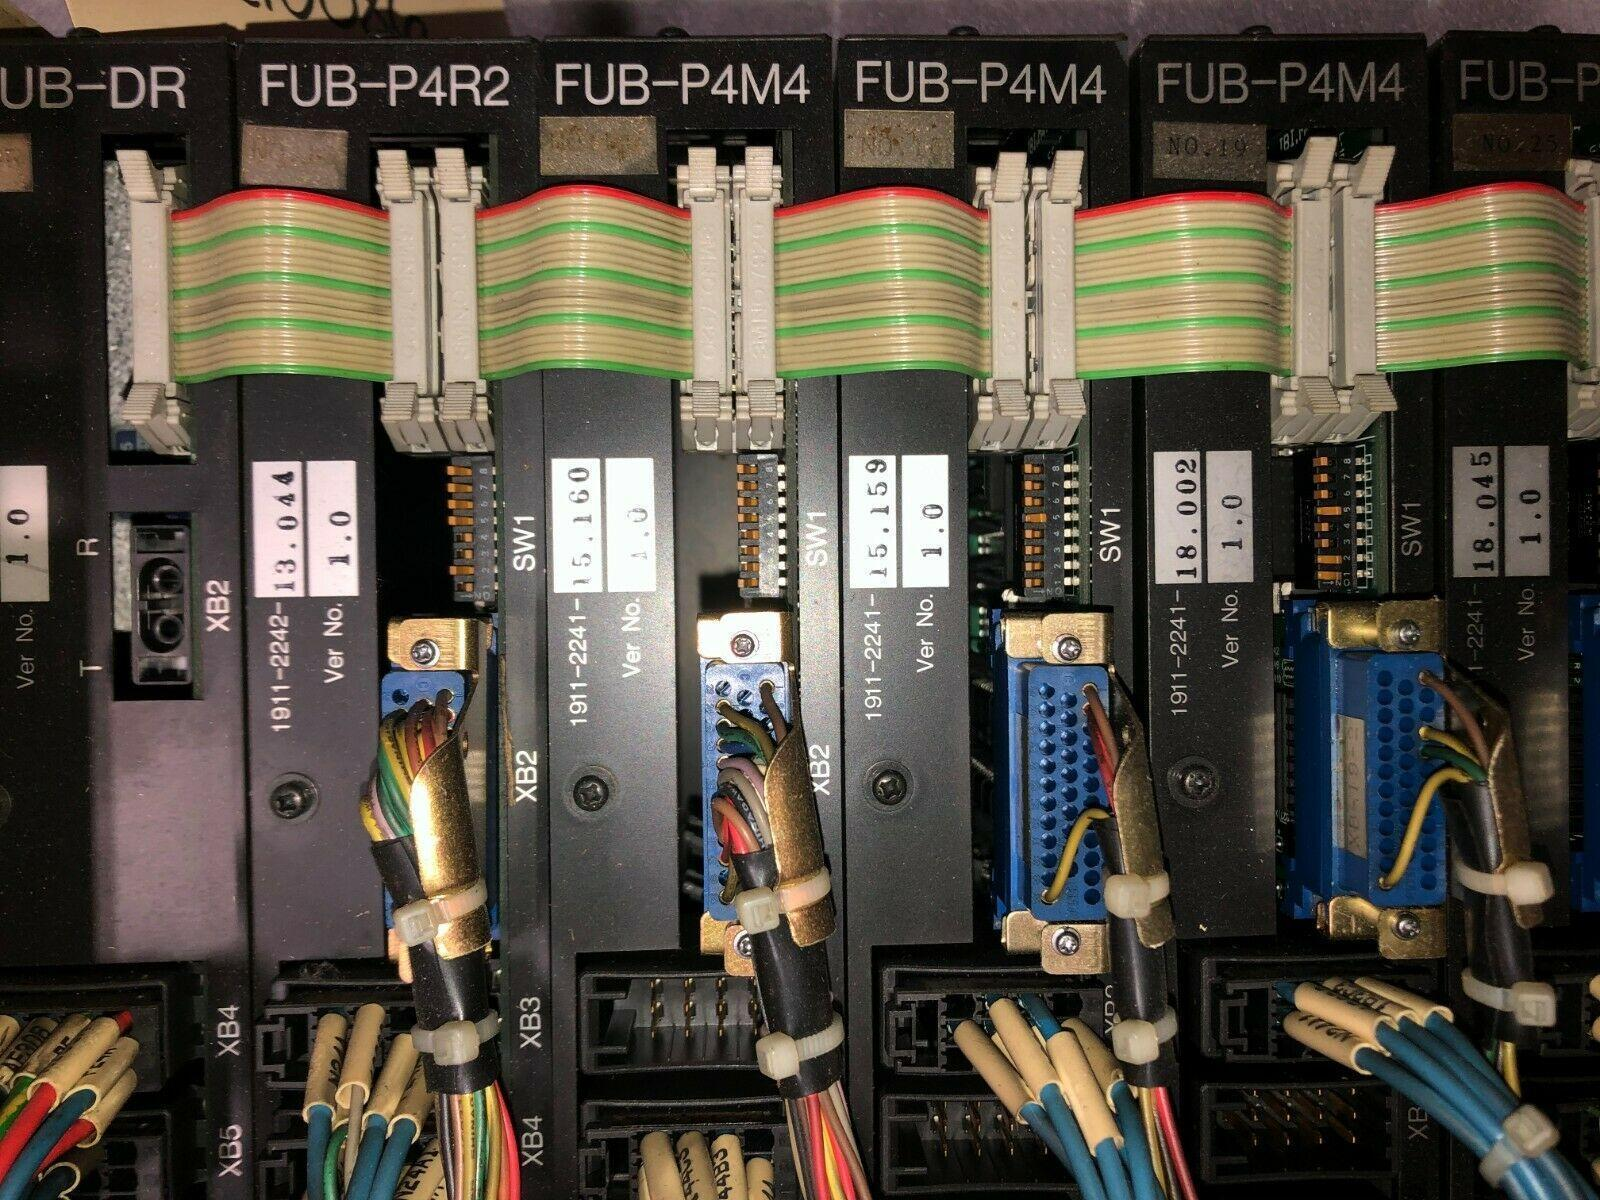 Okuma I/O Unit: (1) FUB-DR, (1) FUB-P4R4, (4) FUB-P4M4. Worked when pulled from machine.